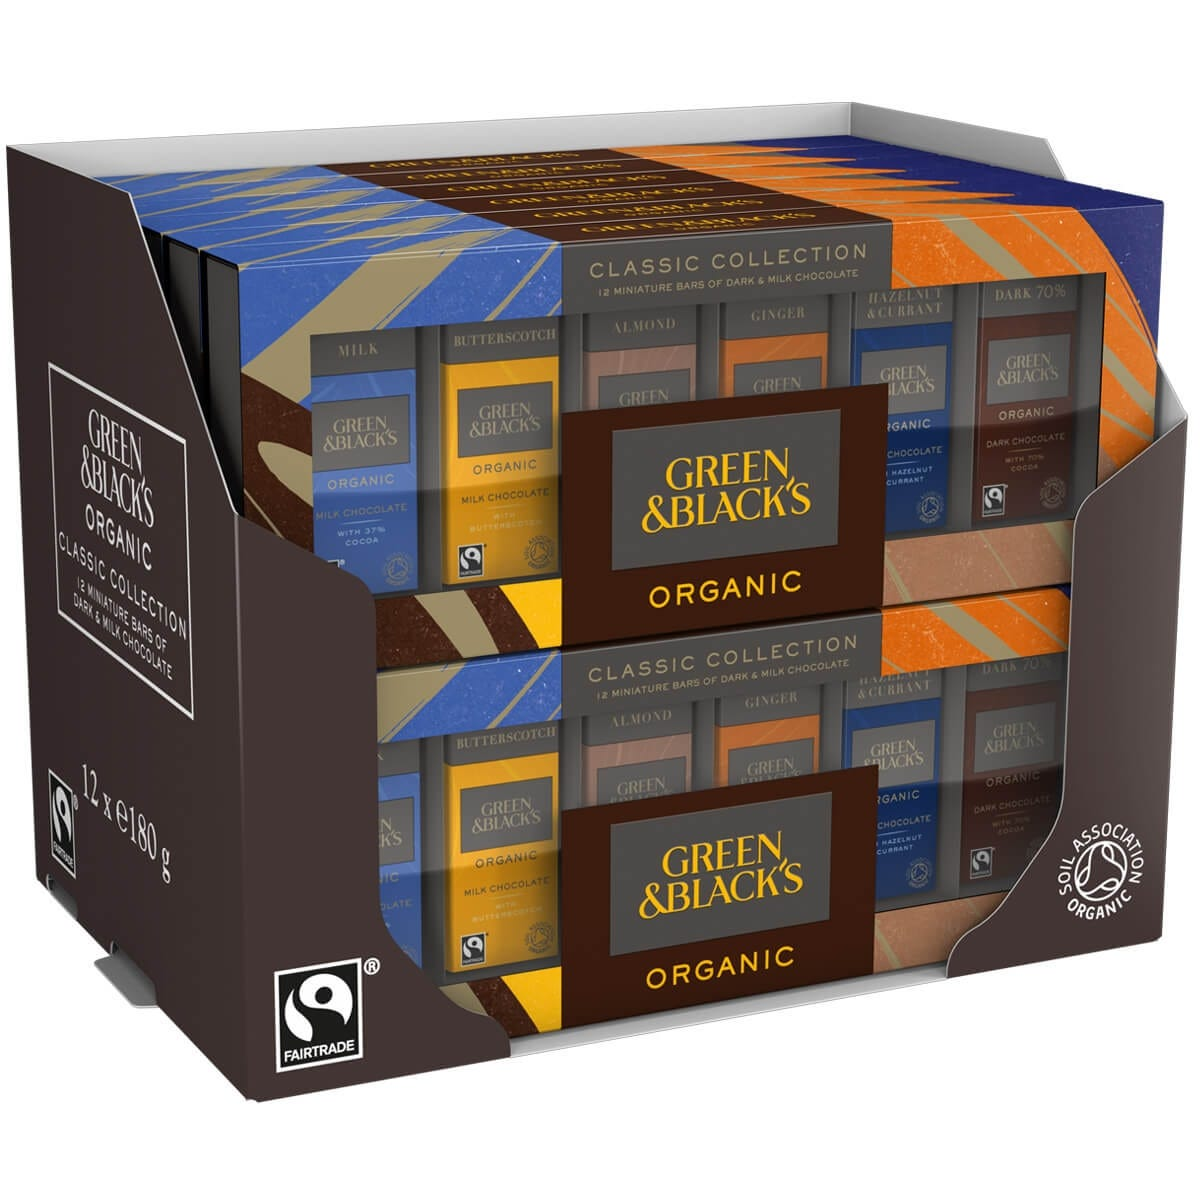 GB Classic Miniatures Bar Collection 180g (Box of 12)